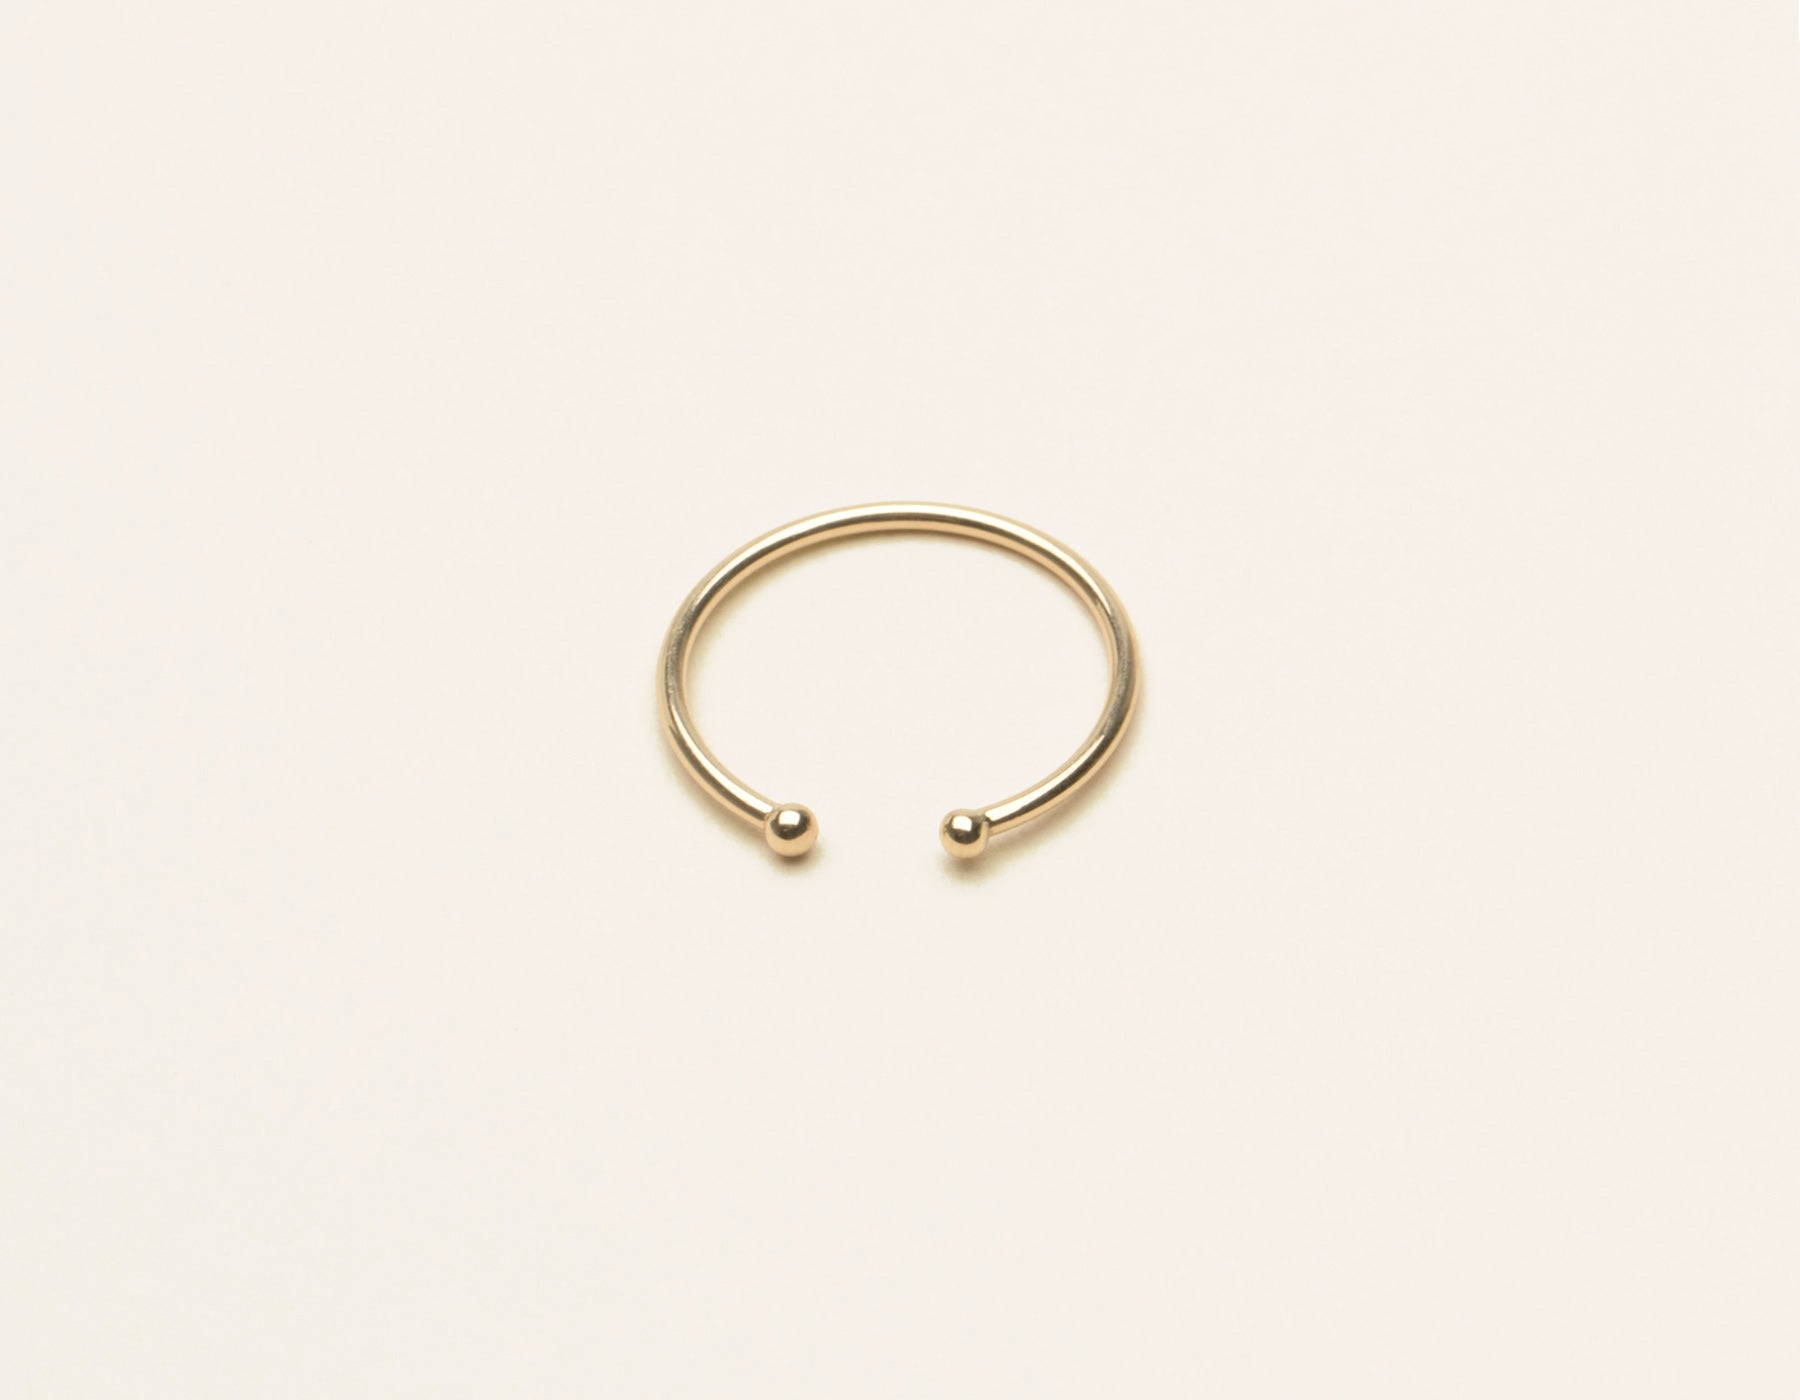 Simple modern 14k solid gold Dot Cuff Ring by Vrai and Oro minimalist jewelry, 14K Yellow Gold